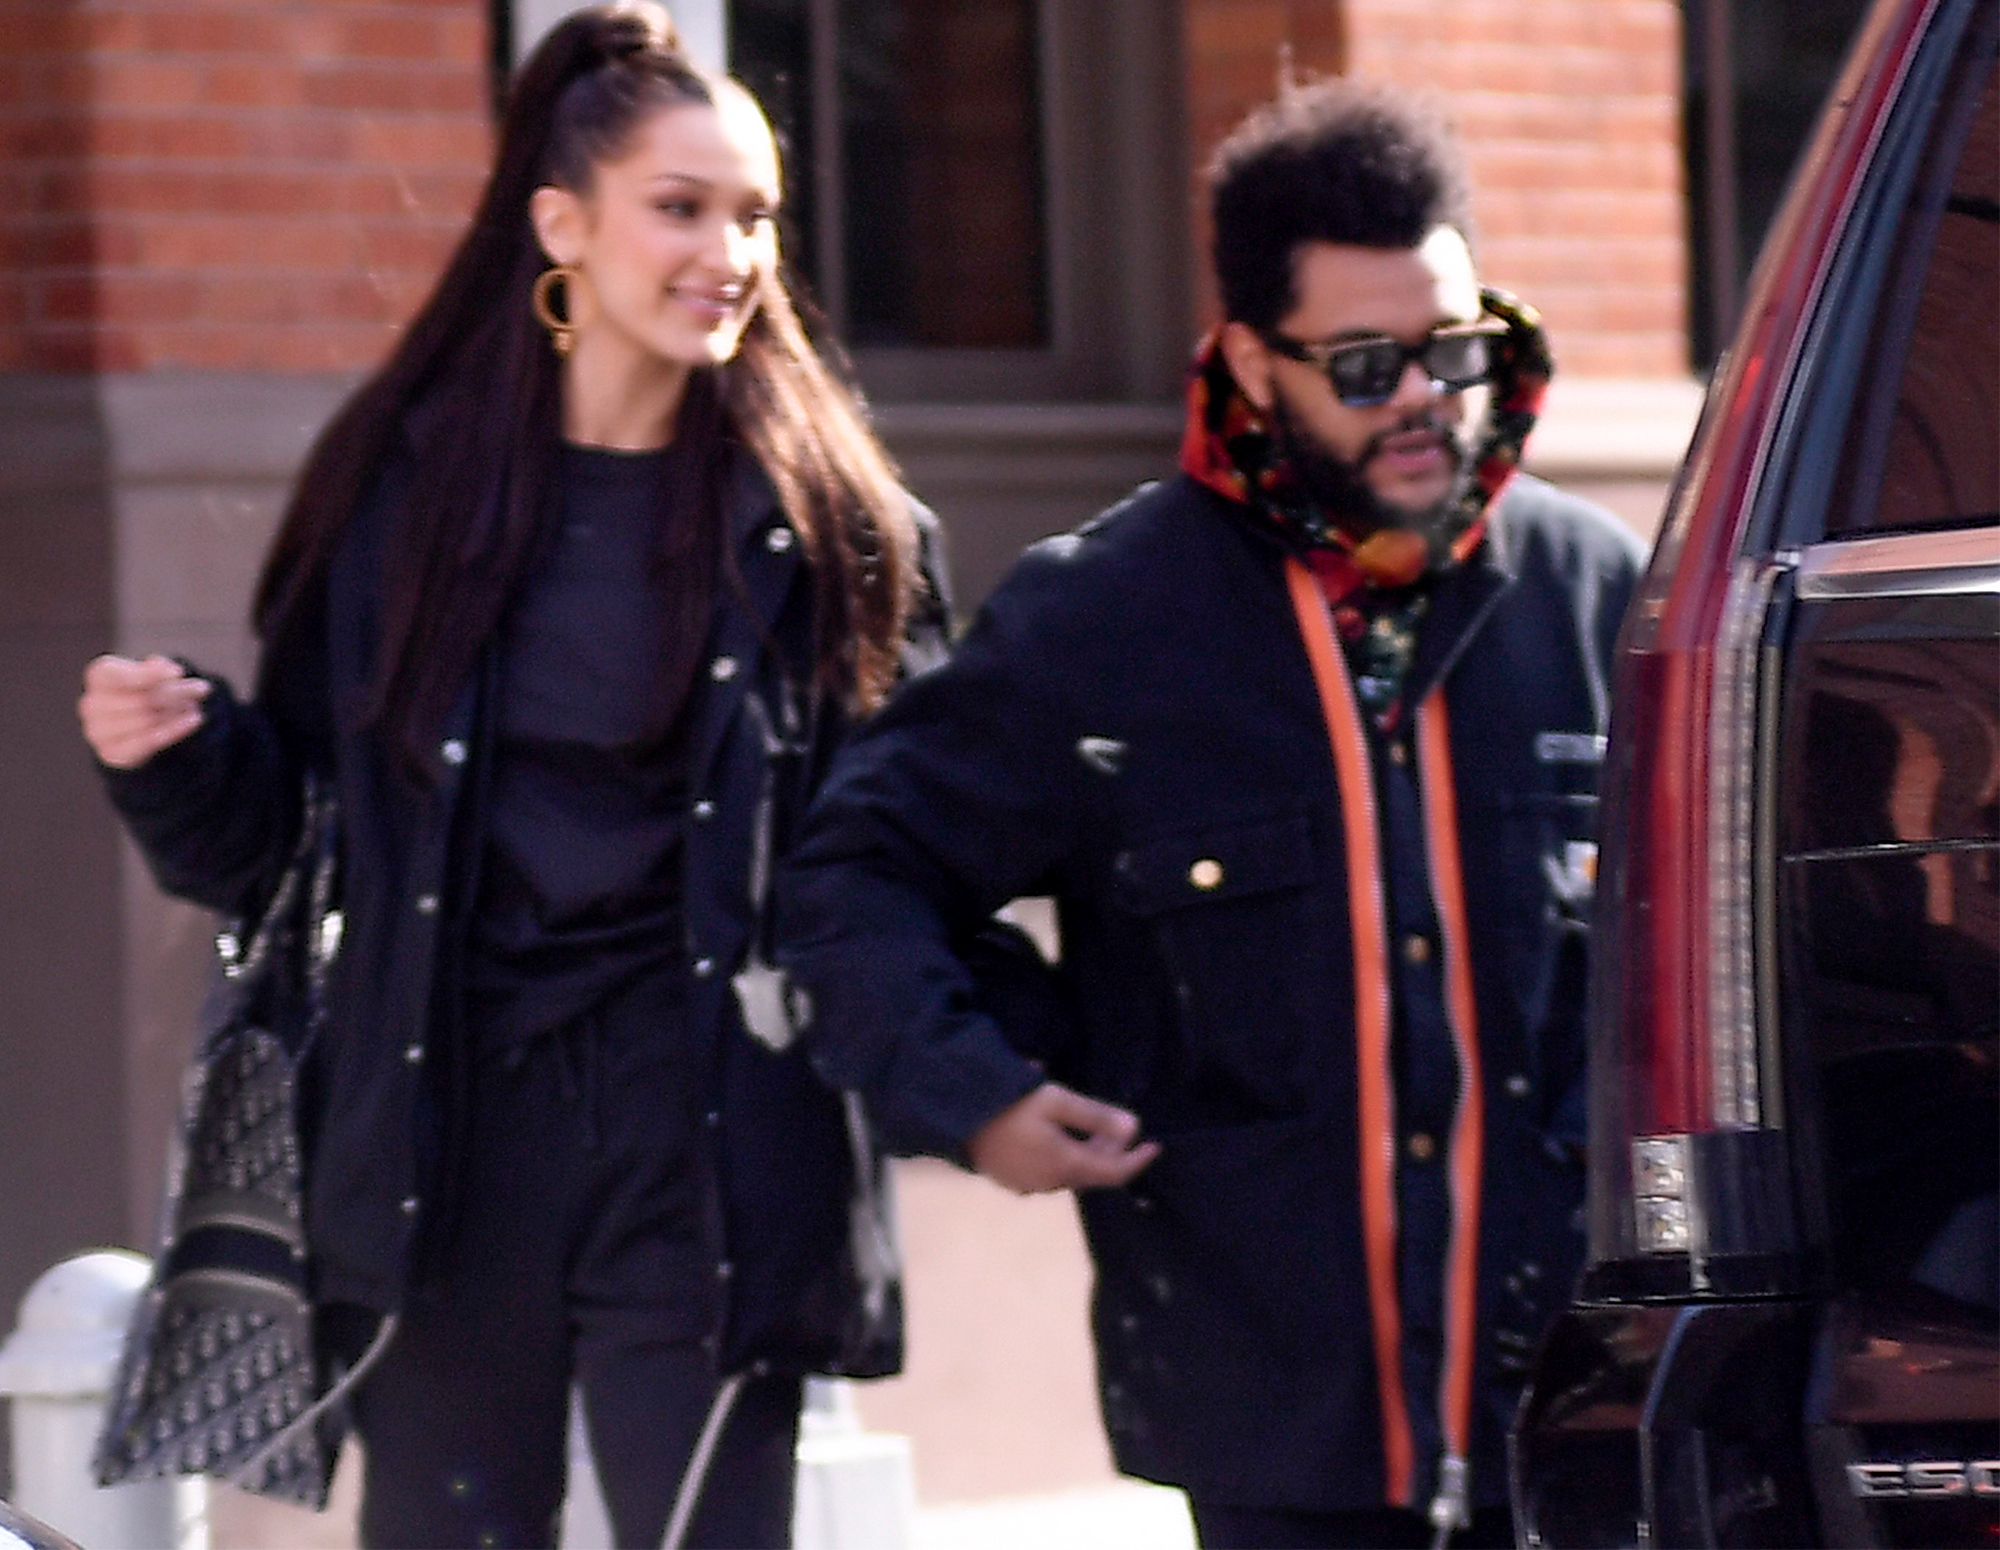 The Weeknd and his girlfriend Bella Hadid are photographed holding hands while leaivng their New York City apartment this morning